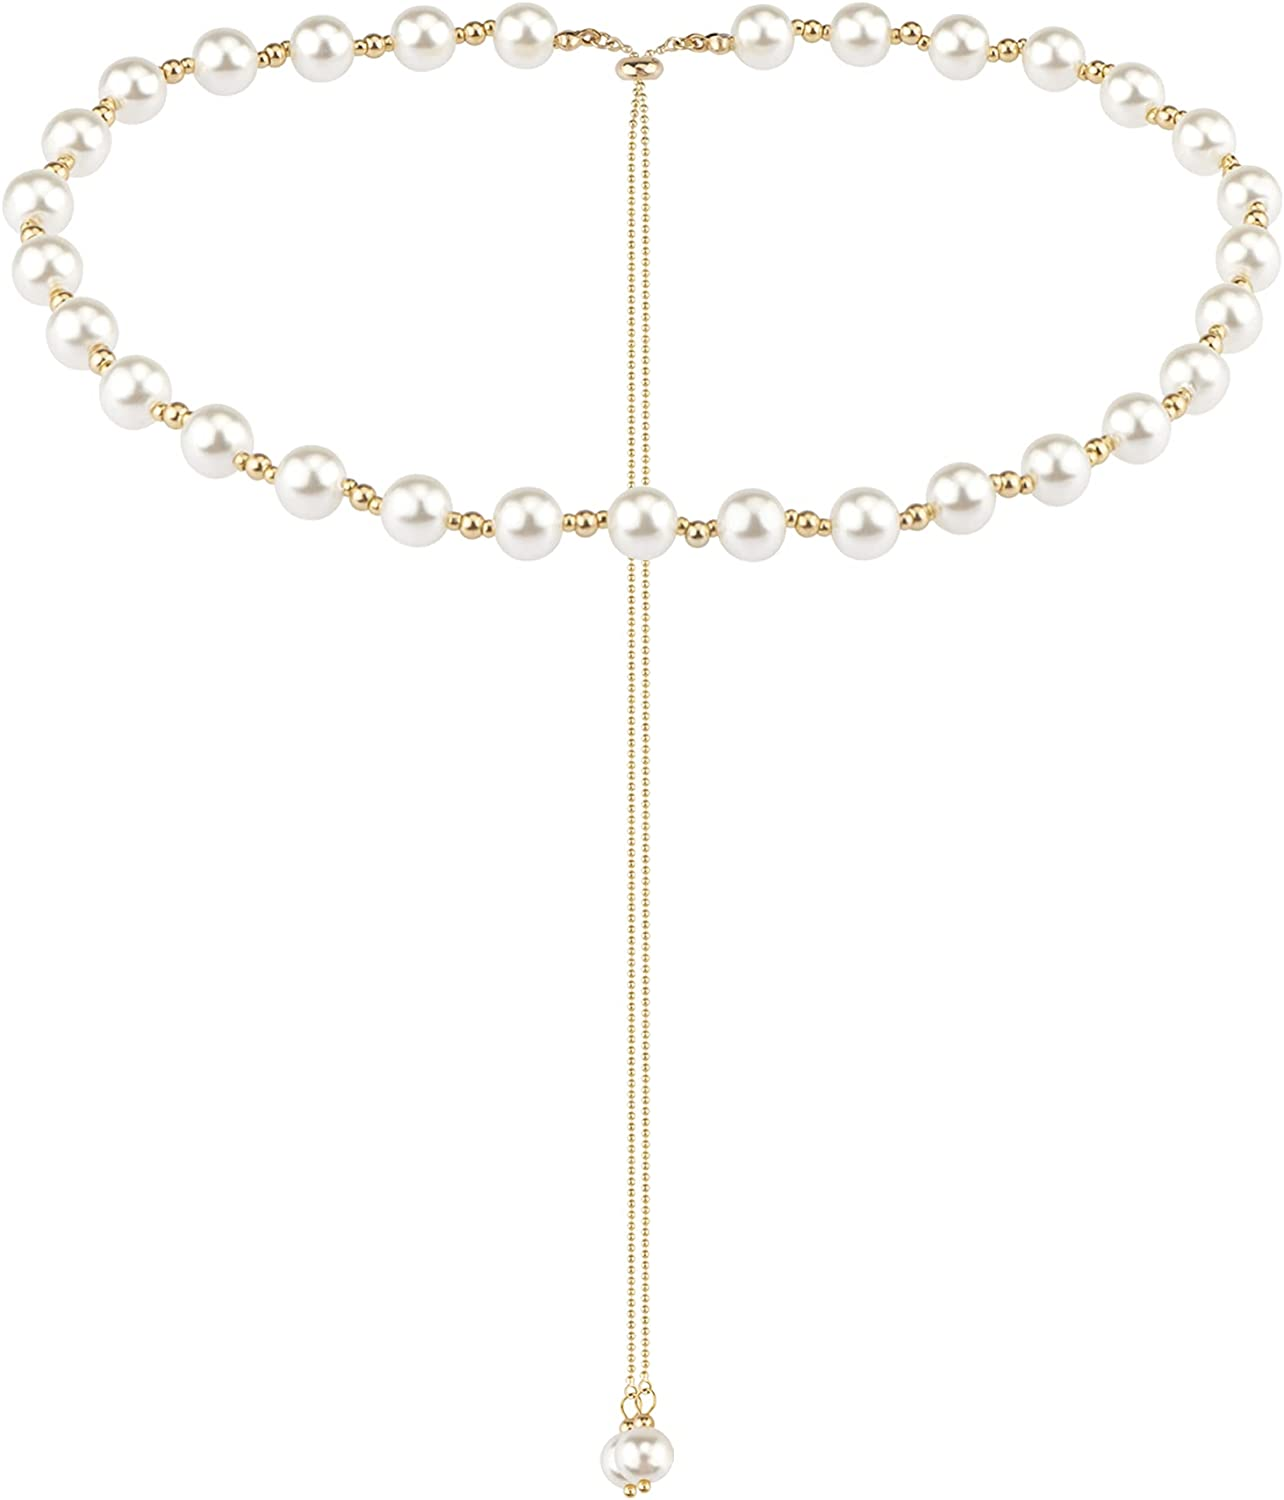 Cecillia Pearl Necklace for Women Pearl Choker Necklace Round Pearl Wedding Necklace with Heart Fashion Jewelry